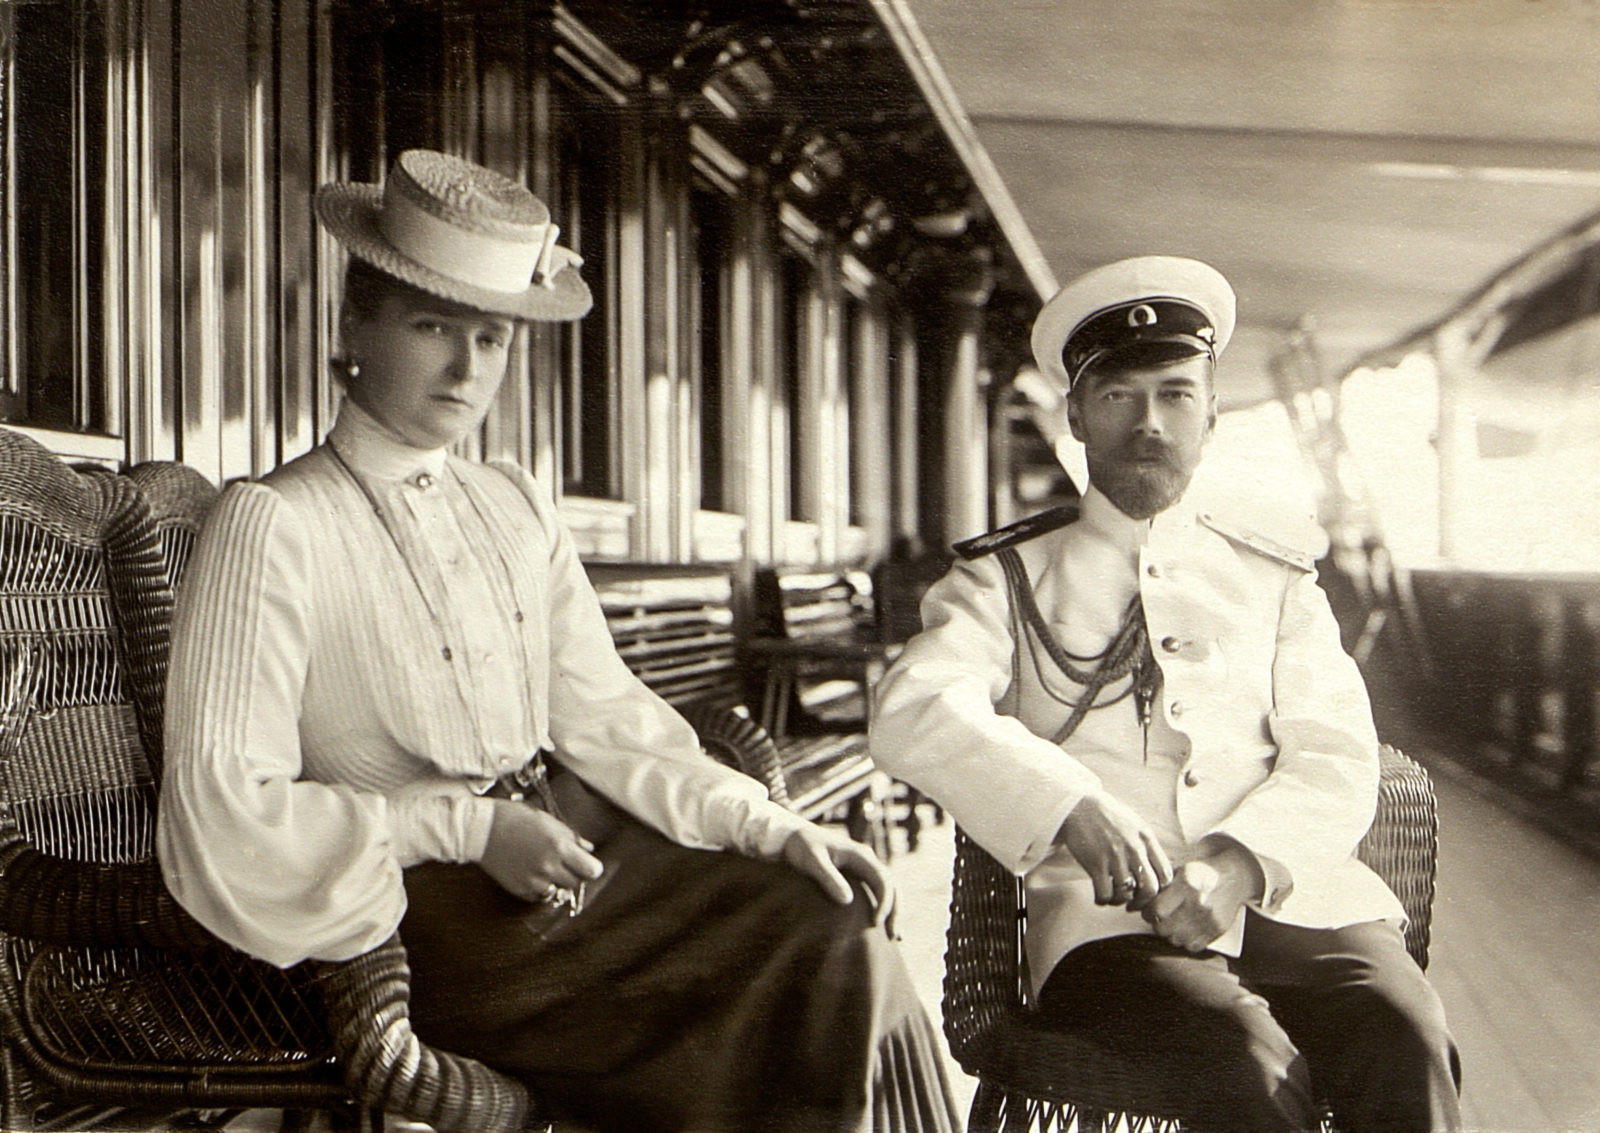 Nicholas II and Alexandra Feodorovna on Yacht Standard